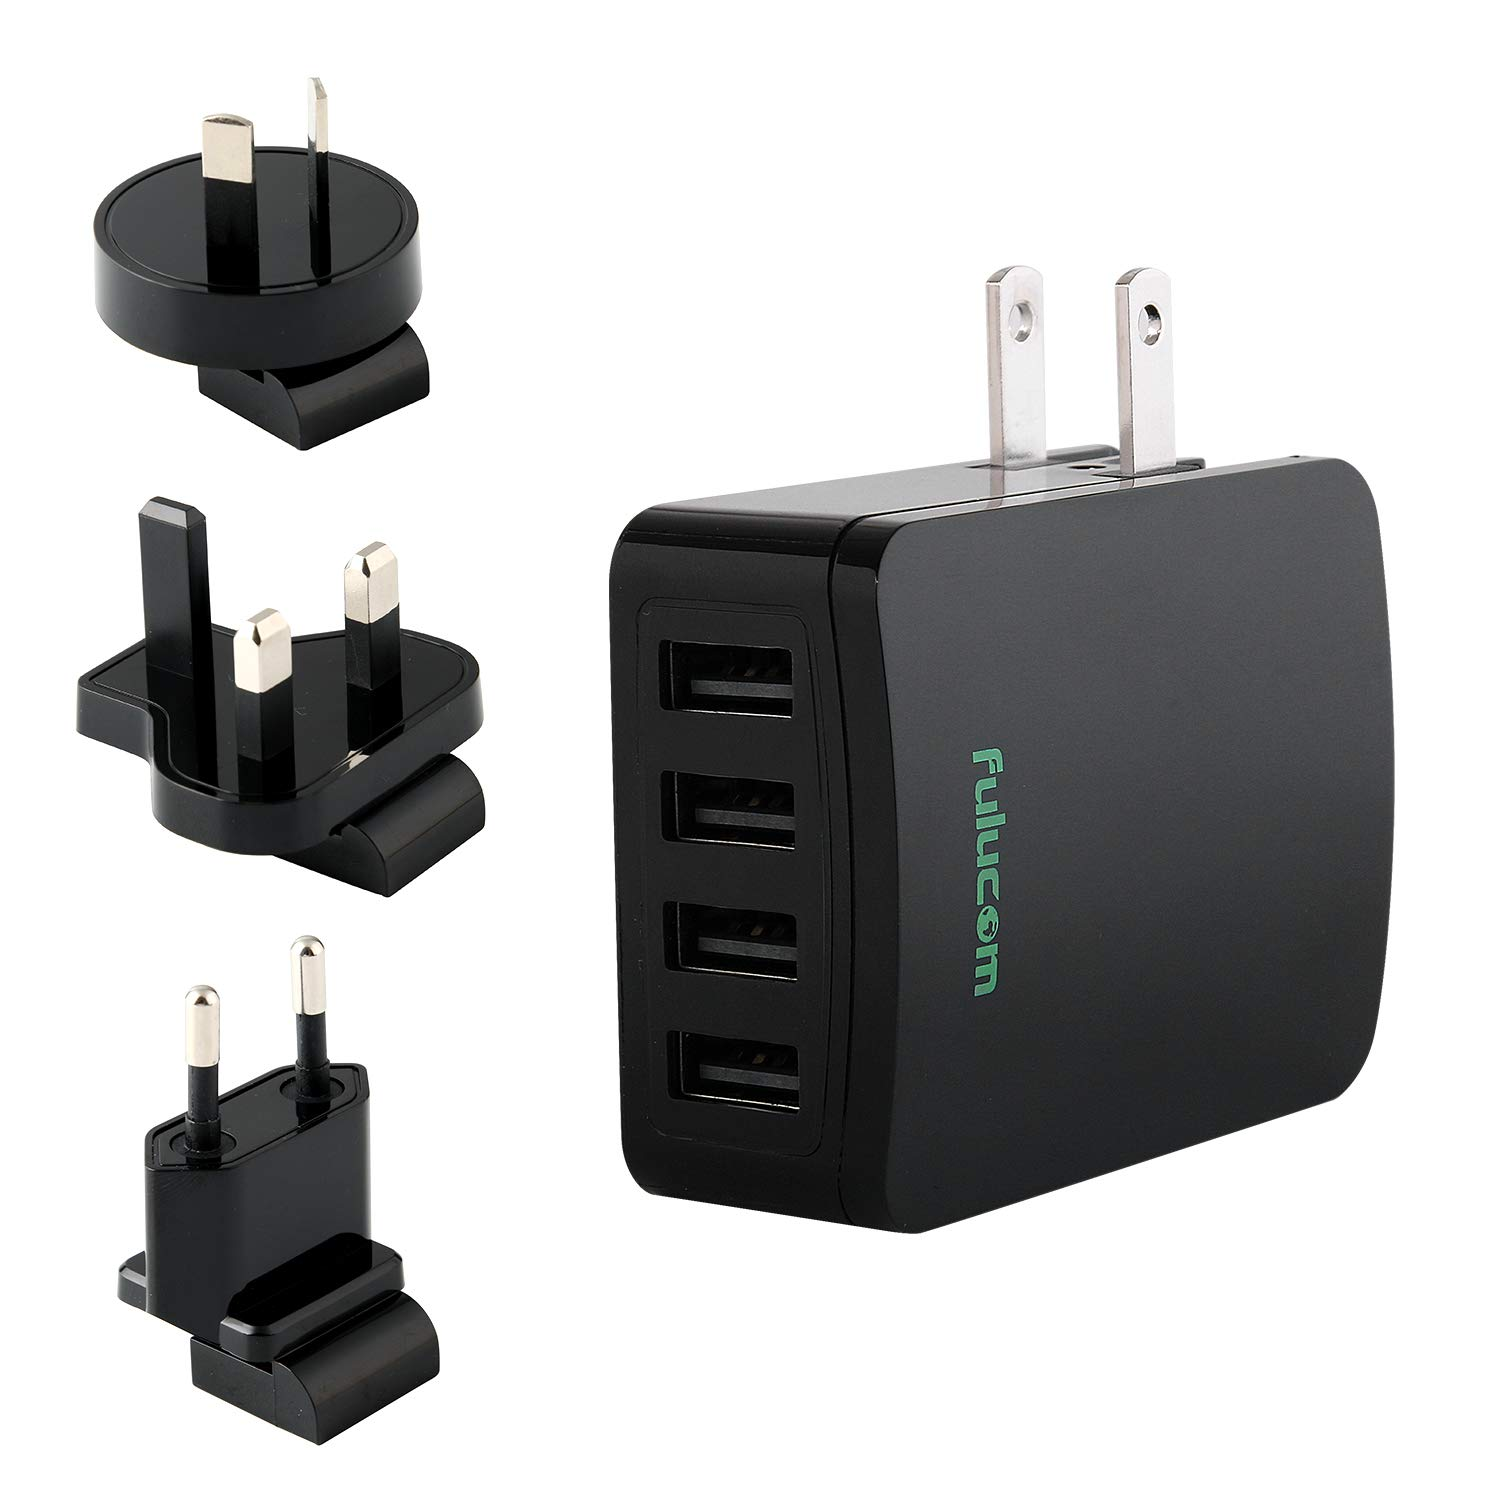 USB Wall Charger,4 Port Fast Charge Travel Charger with Foldable Plug,5V 5.4A,with US EU UK AU International Travel Adapters,for iPhone,Samsung,iPad, Android, Smartphones,ETL,FCC,CE,ROHS Certified